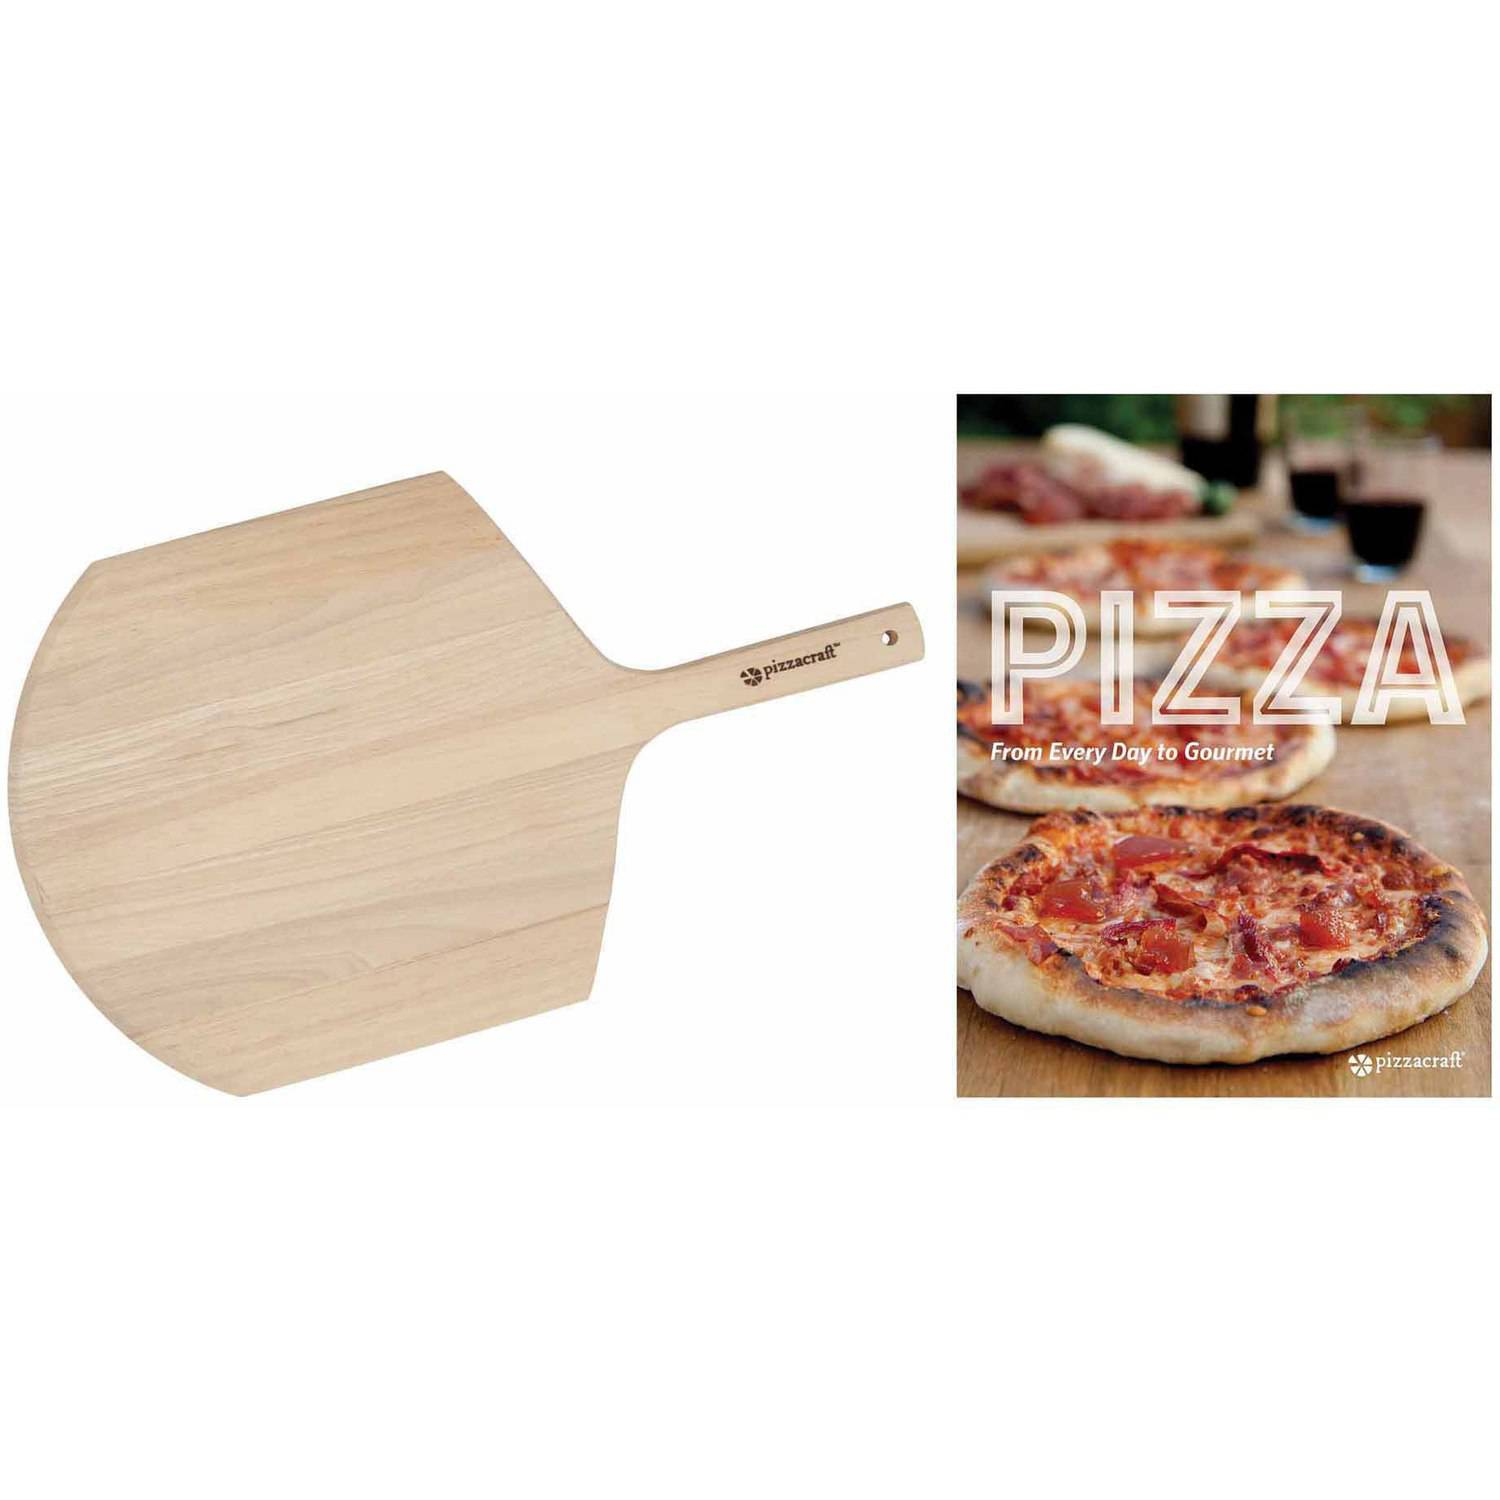 Pizzacraft Pizza Recipe Book and Wooden Peel